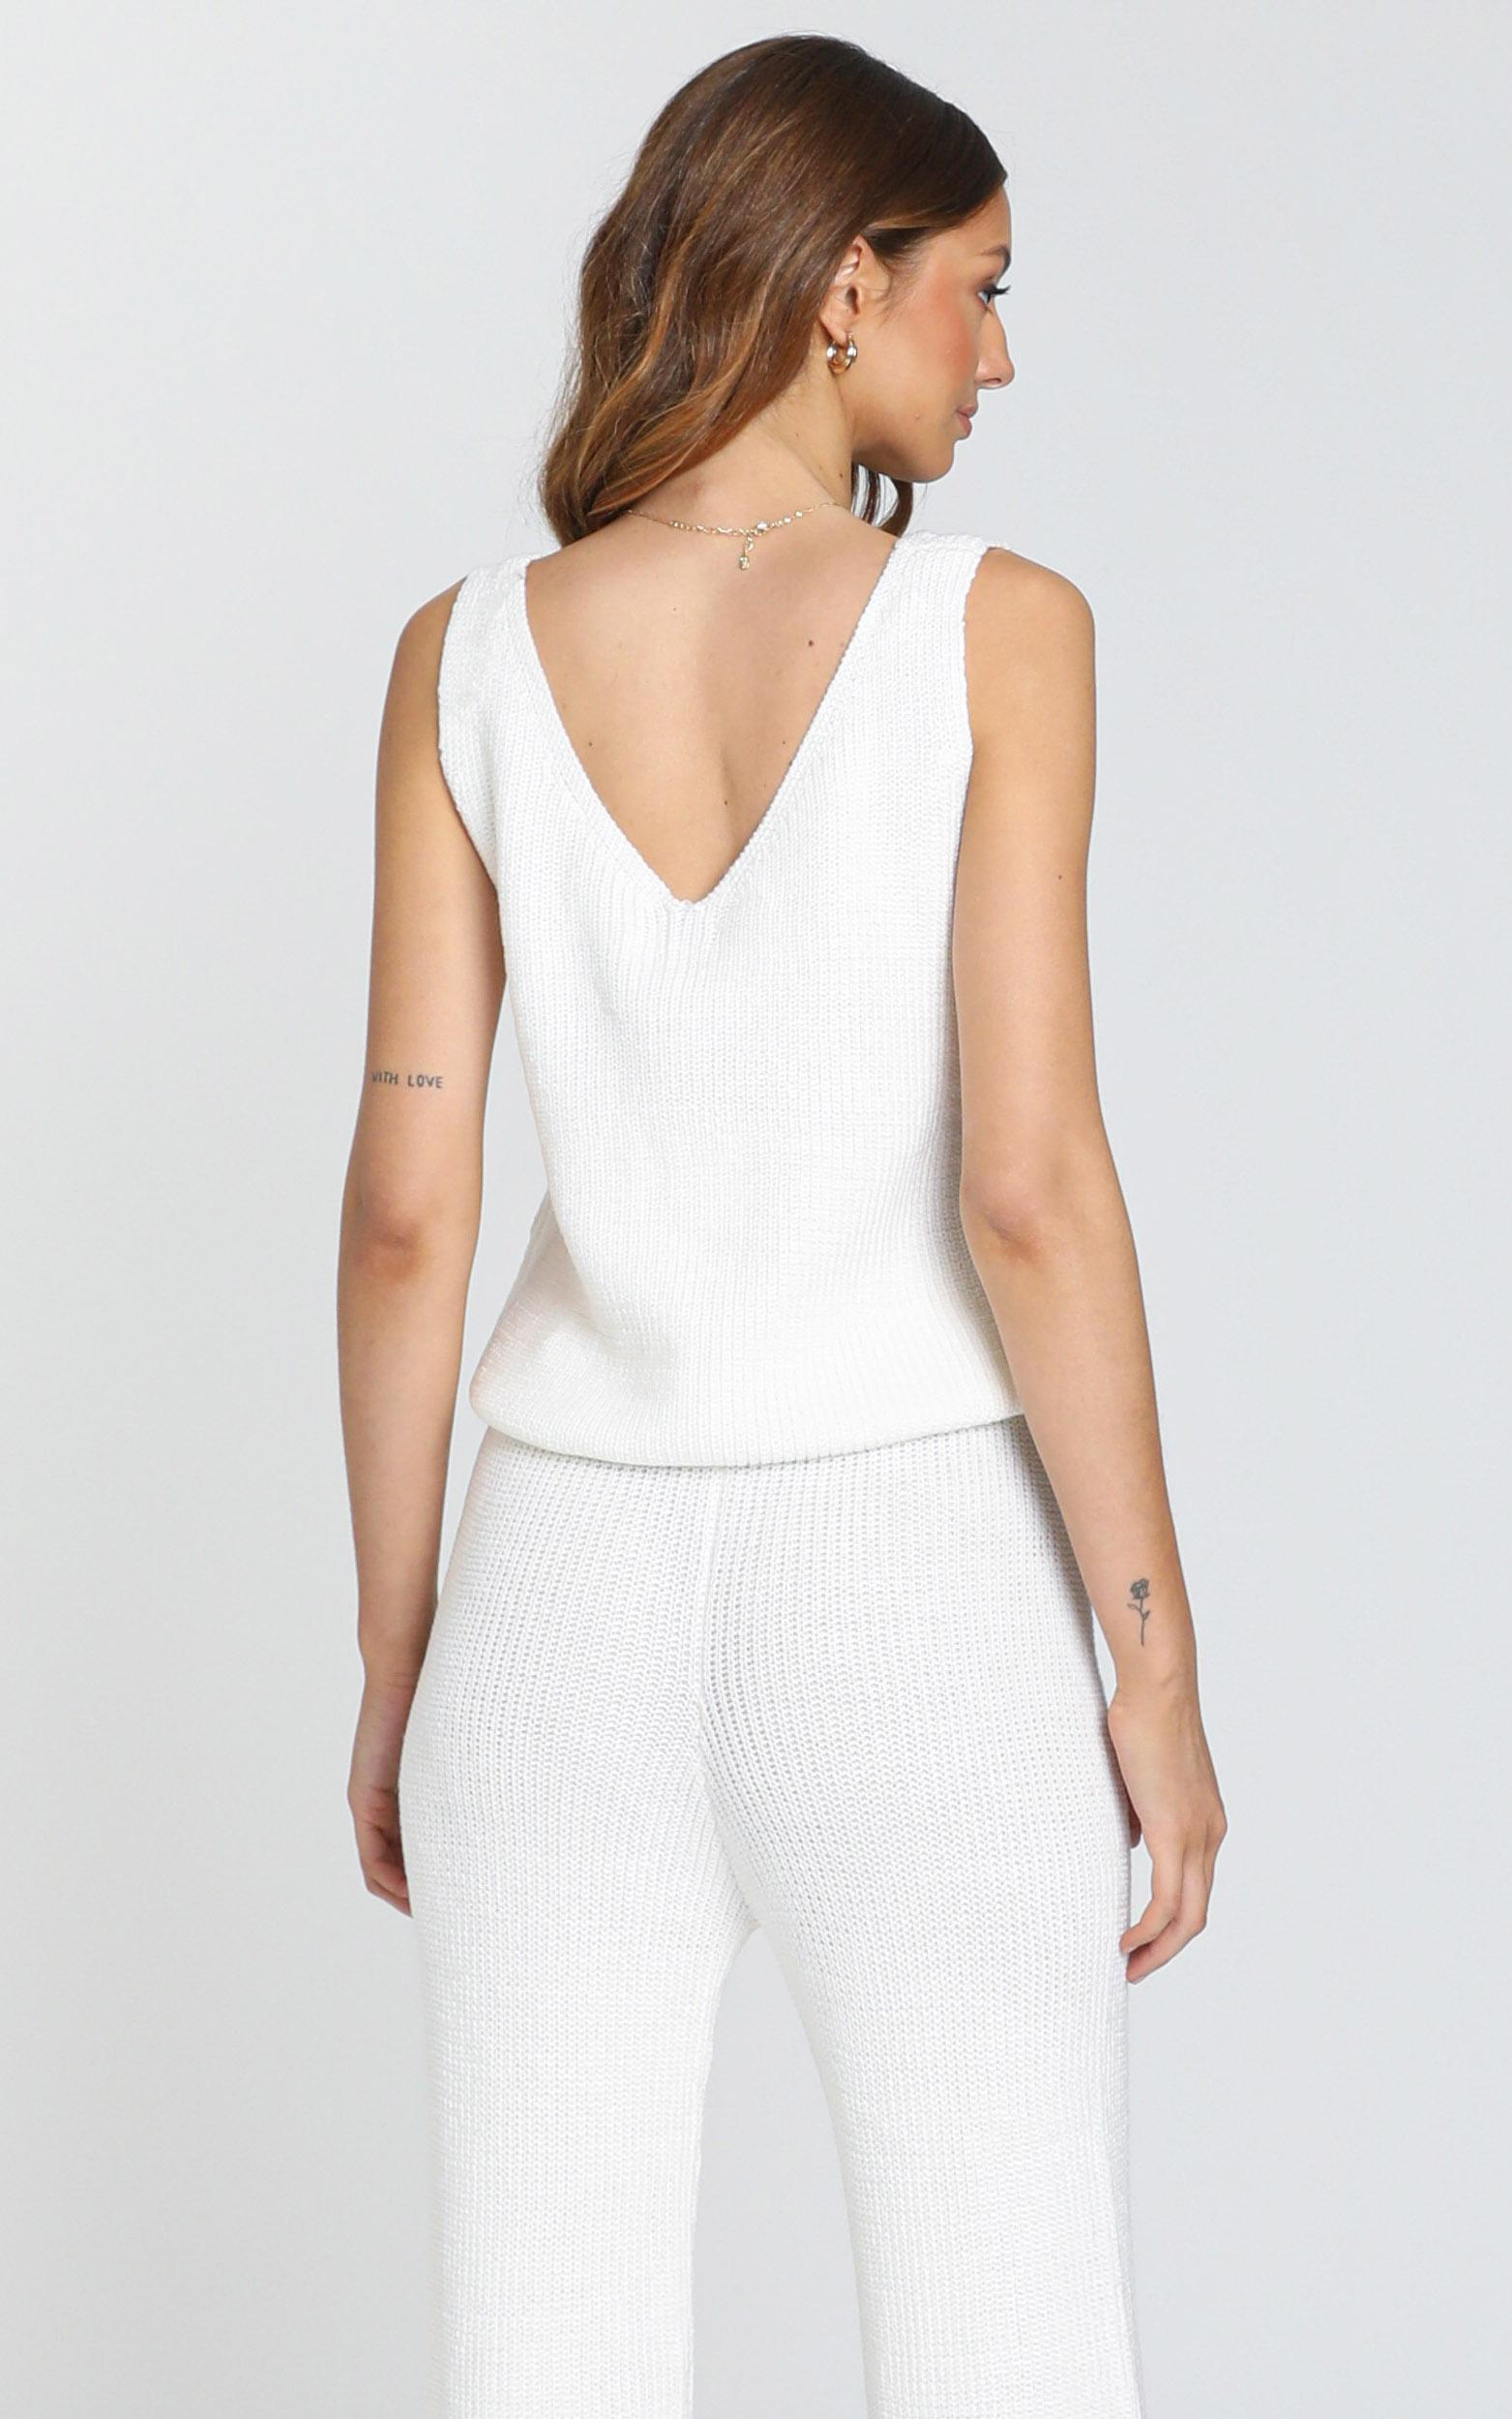 Luxe Lounge Knit Vest in Cream - S/M, Cream, hi-res image number null